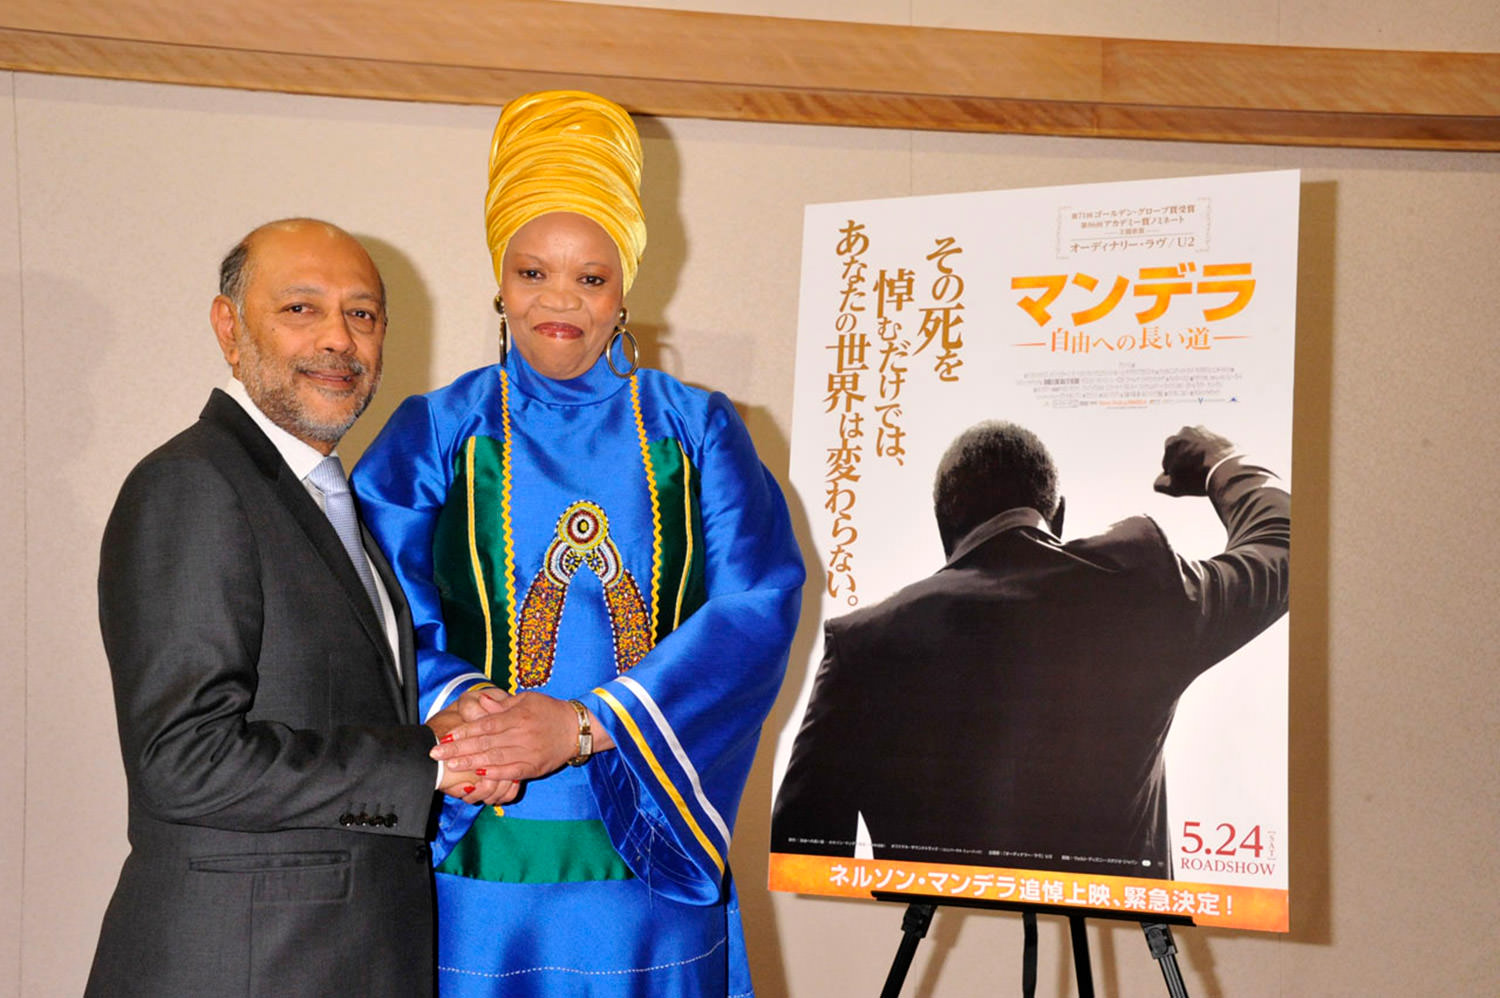 Anant Singh and South Africa's Ambassador to Japan, Her Excellency Dr. Mohau Pheko / Videovision Entertainment (p)